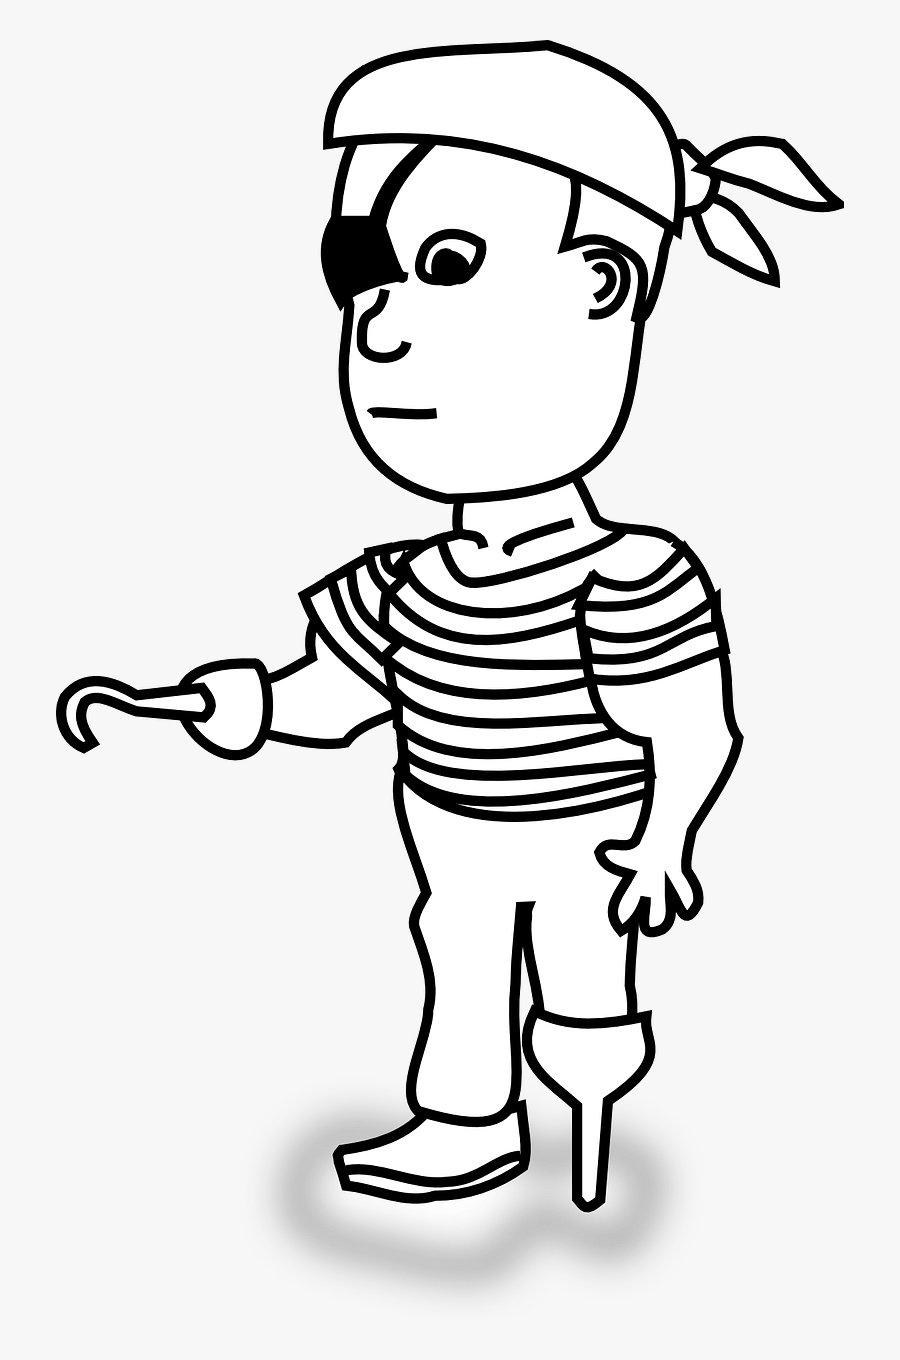 Pirate,man,peg Leg,hook,hand,eye Patch,free Vector - Outline Of A Pirate, Transparent Clipart